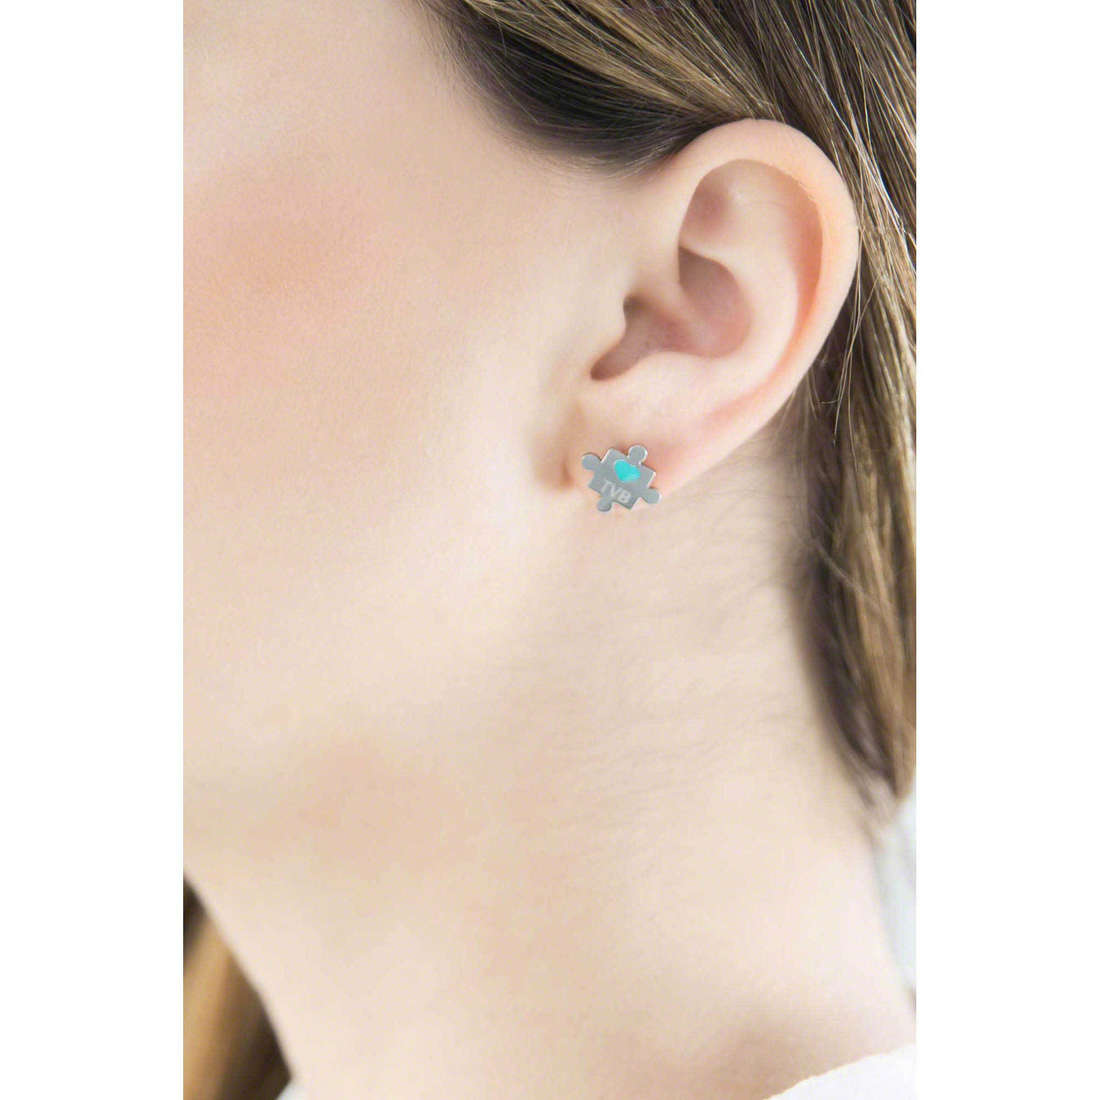 Marlù boucles d'oreille My World femme 18OR019 indosso